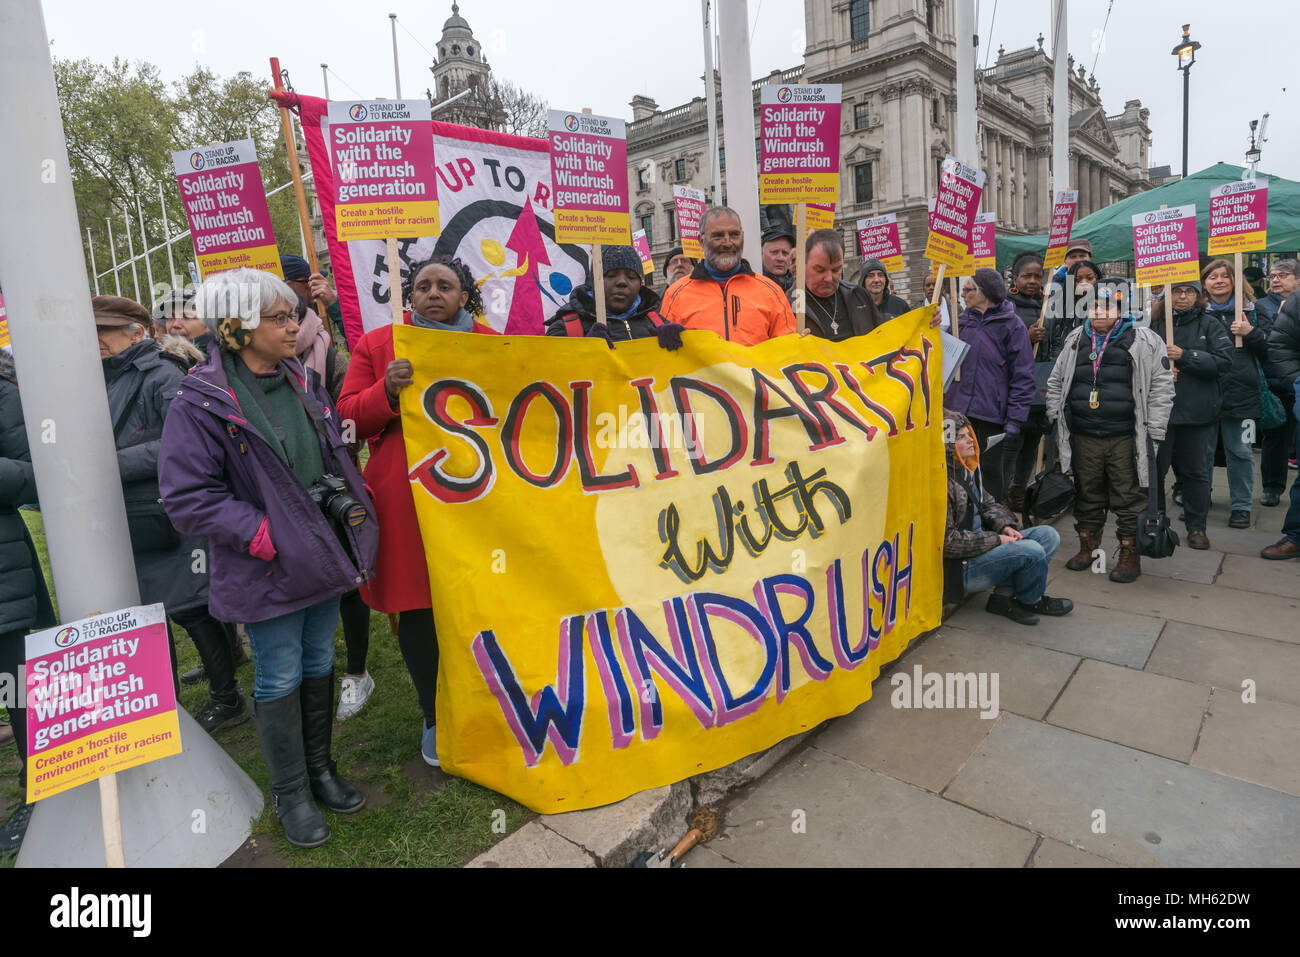 London, UK. 30th April 2018.  People hold the 'Solidarity With Windrush' banner at the protest in support of the petition calling for an end to the deportations of migrants in the 'Windrush generation' who arrived in Britain between 1948 and 1971. It calls on the government to change the burden of proof which means they are now required to prove their right to remain, and to provide compensation for any loss and hurt.. re for many years, paying taxes and raising famil Credit: Peter Marshall/Alamy Live News - Stock Image